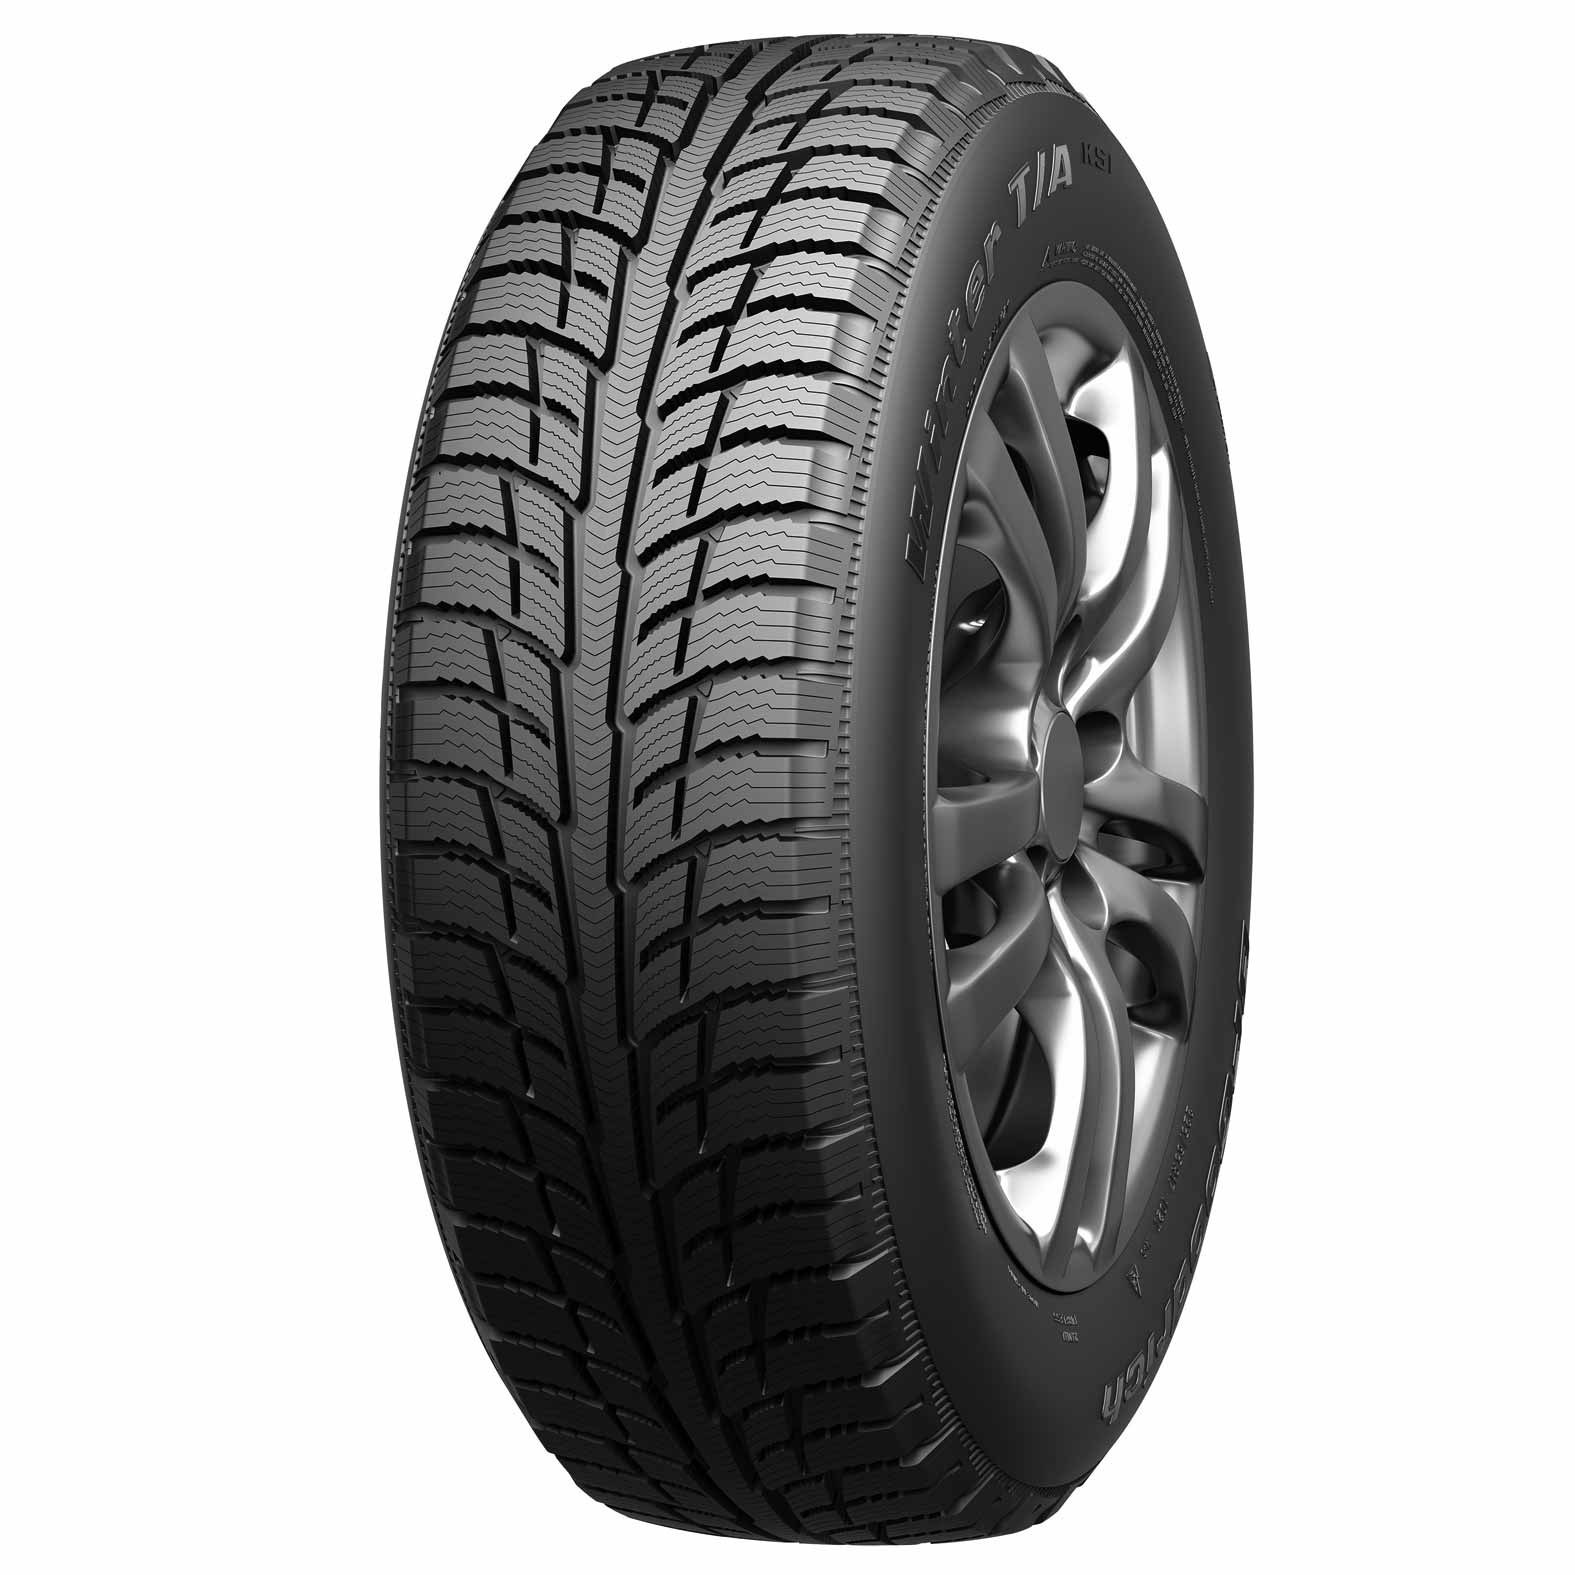 BFGoodrich Winter TA KSI tire - angle